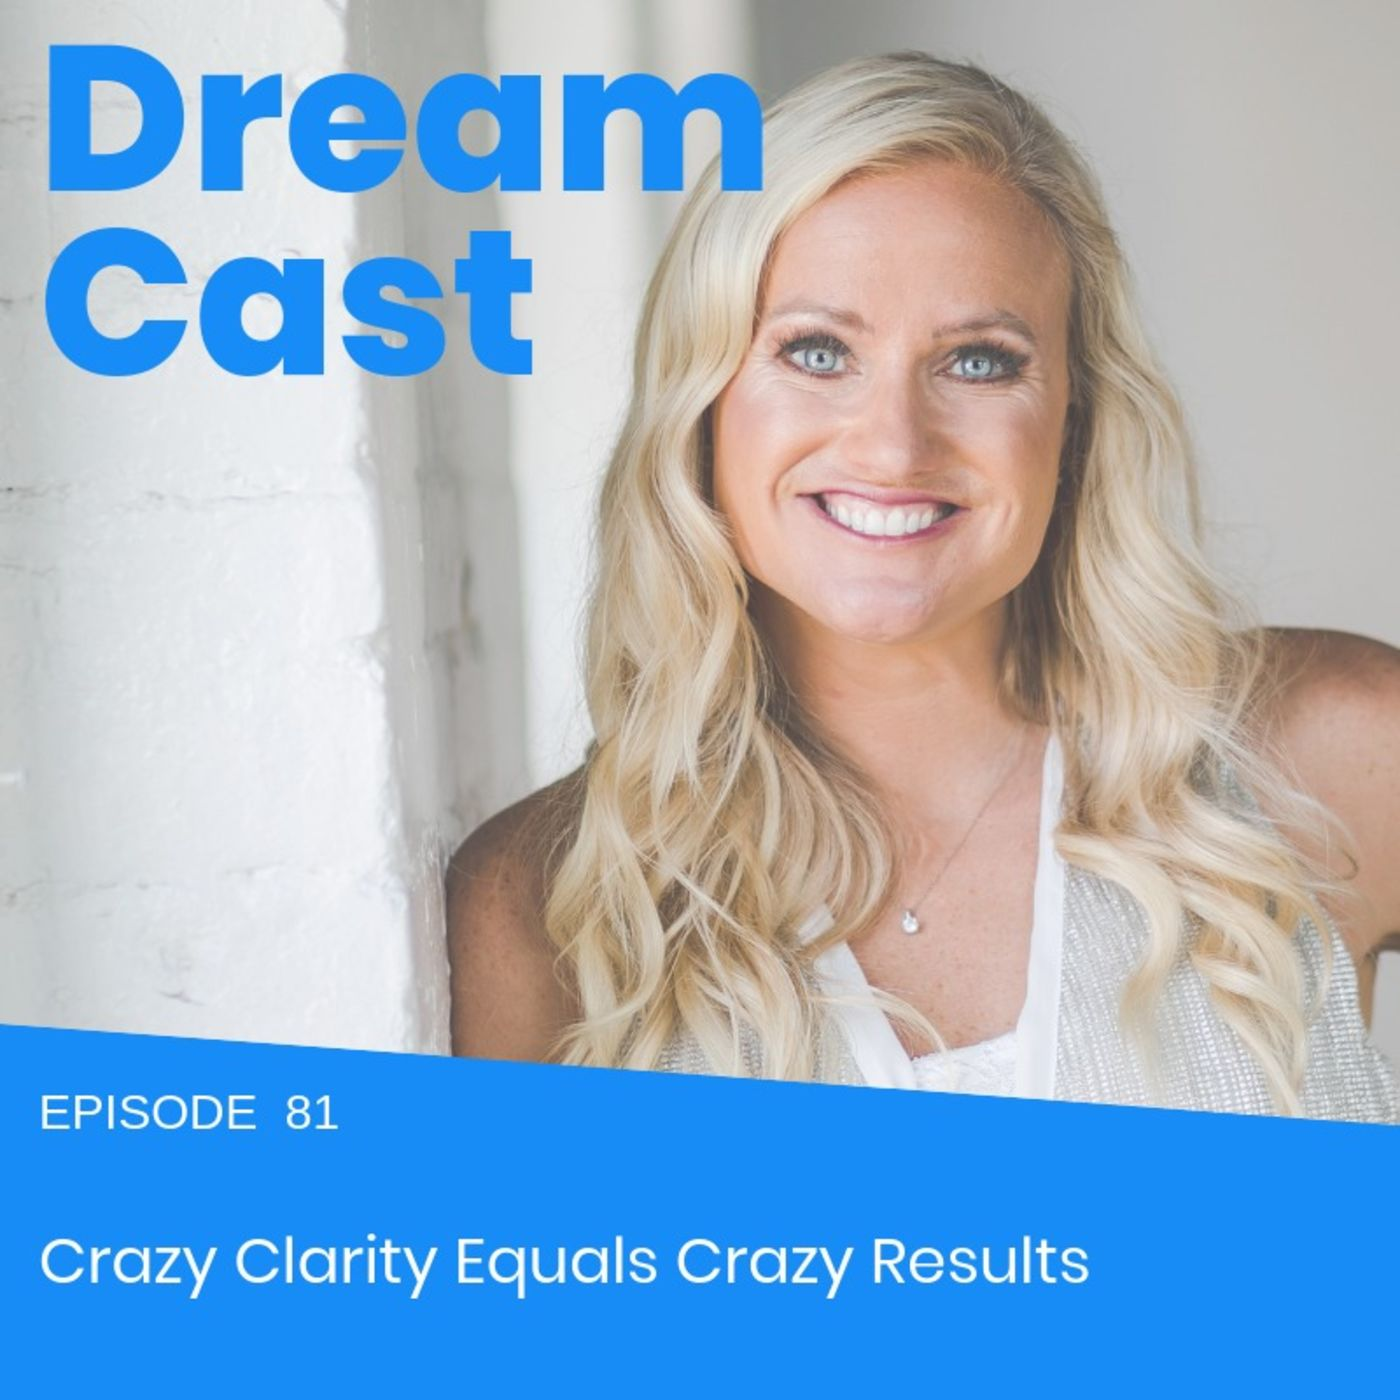 Episode 81 - Crazy Intention Equals Crazy Results